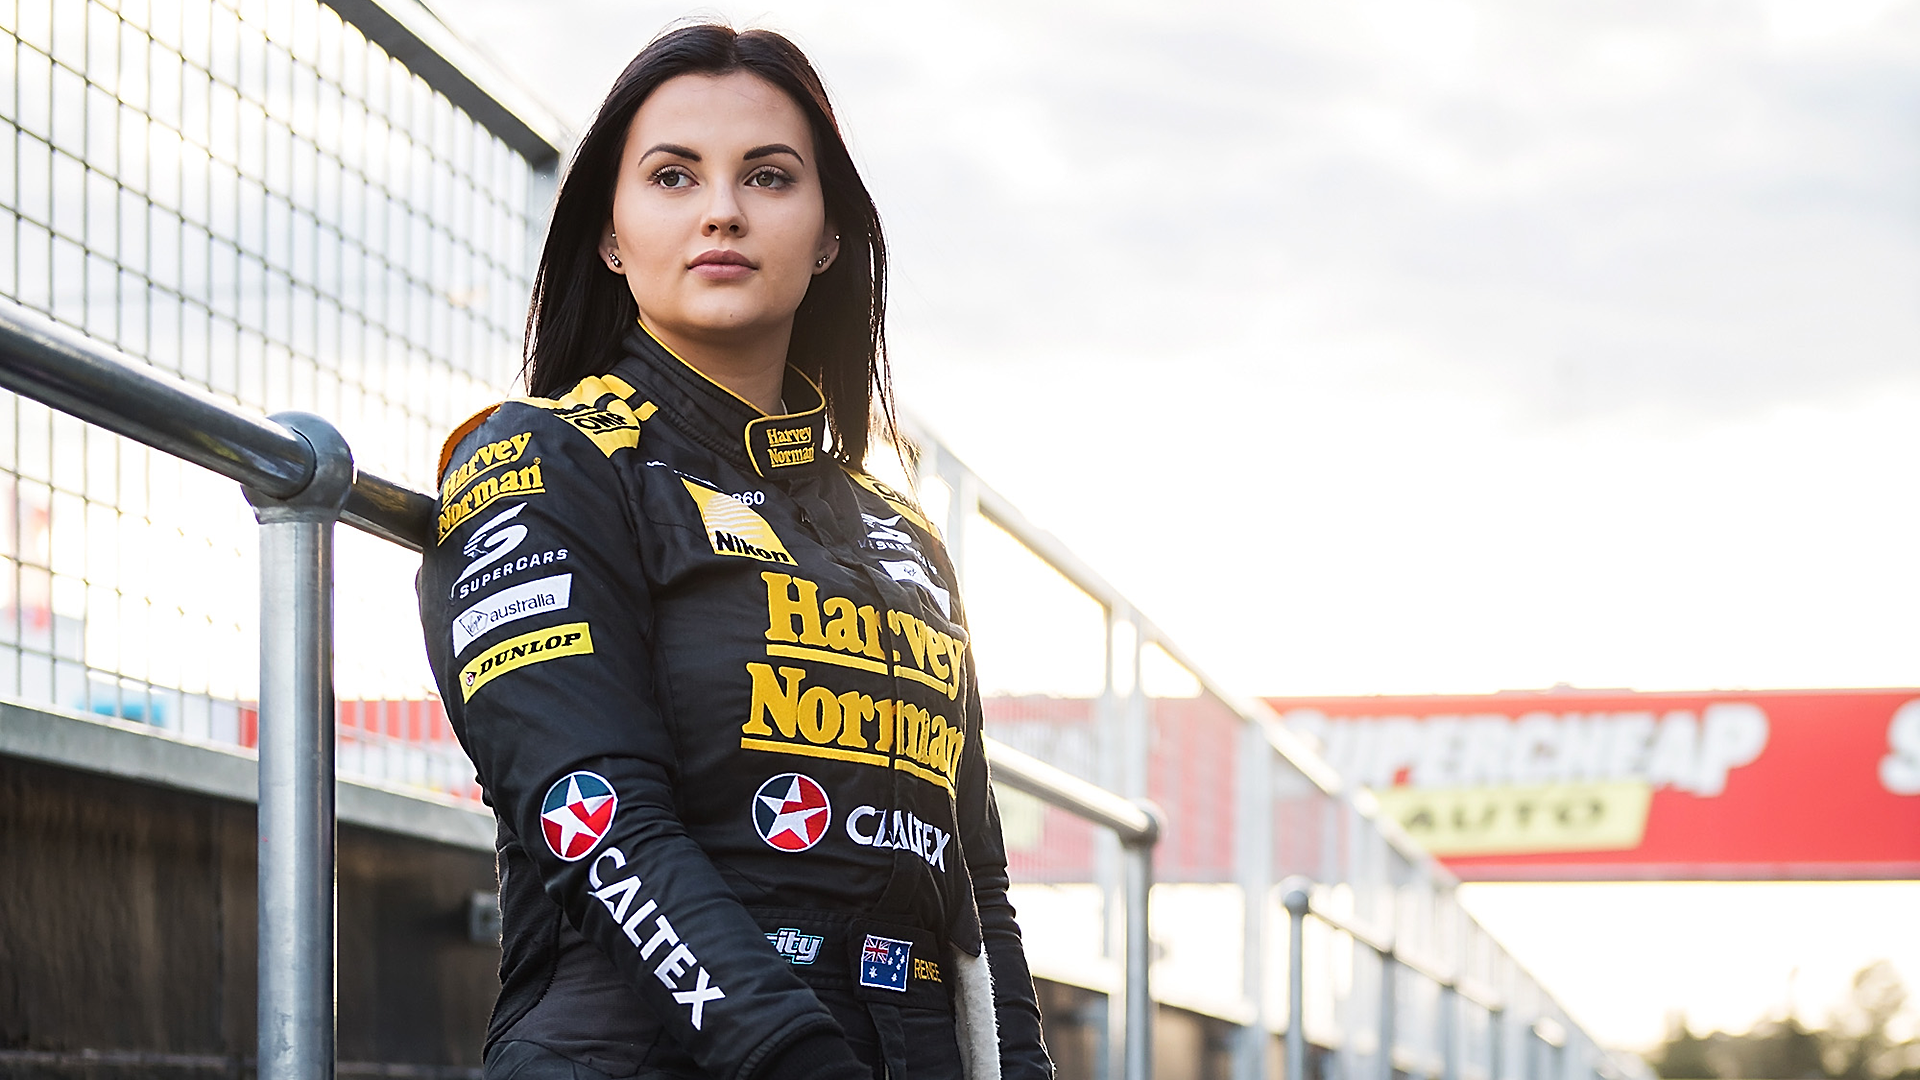 Racing prodigy Renee Gracie went from alt=